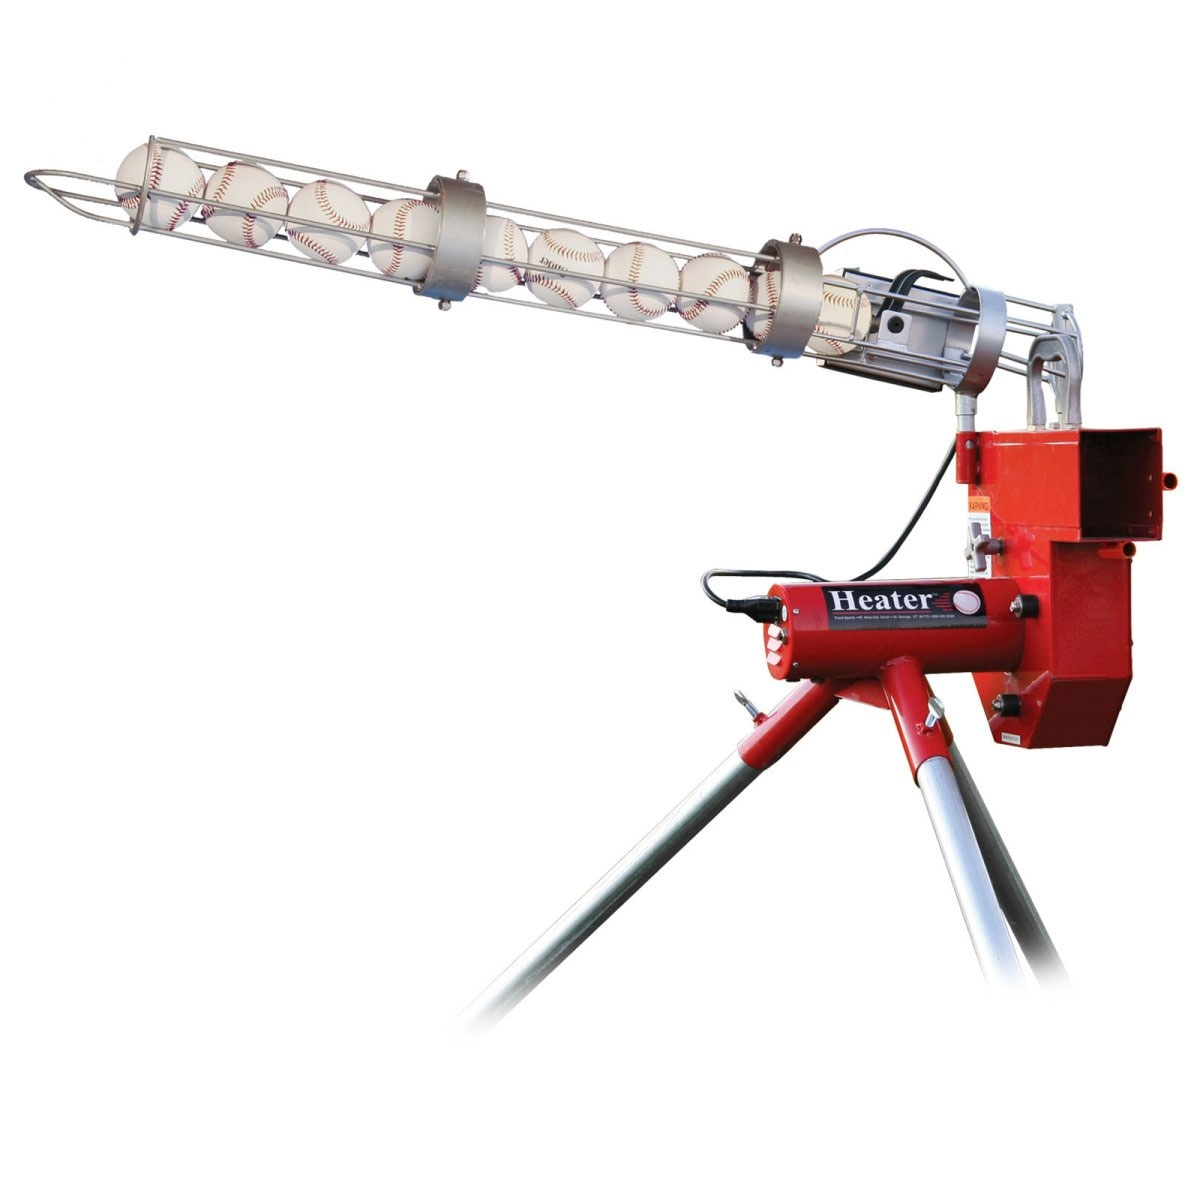 Packaging or Promotional image for Heater Baseball Pitching Machine with Ball Feeder